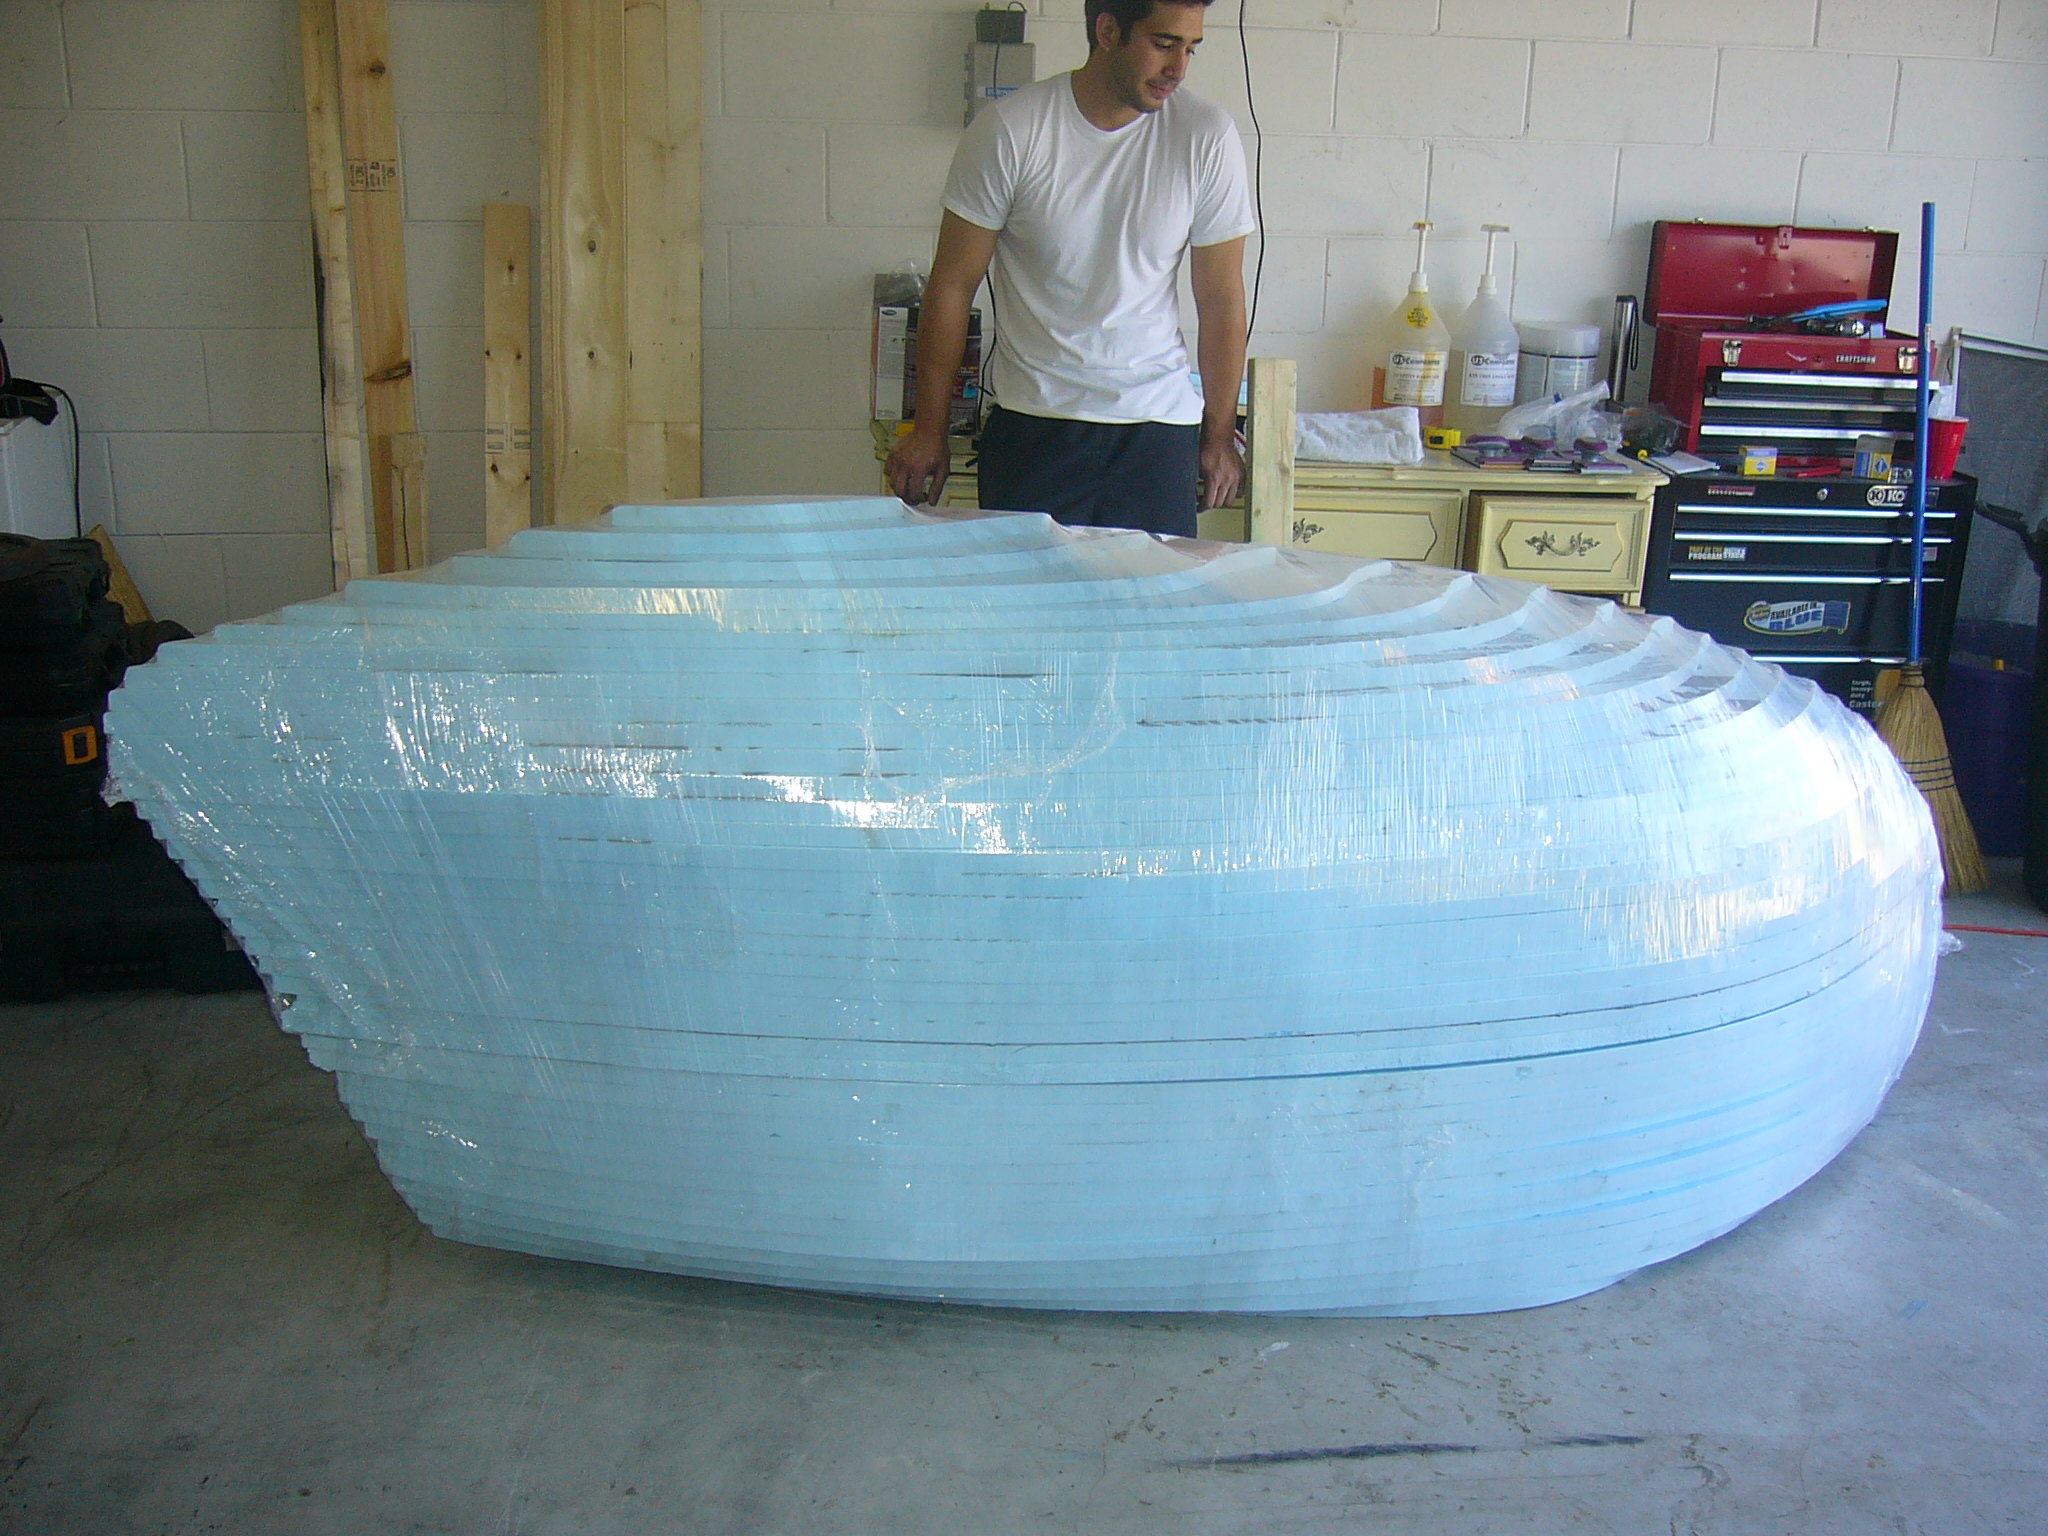 [Video] Large Scale Mold Making - Part I